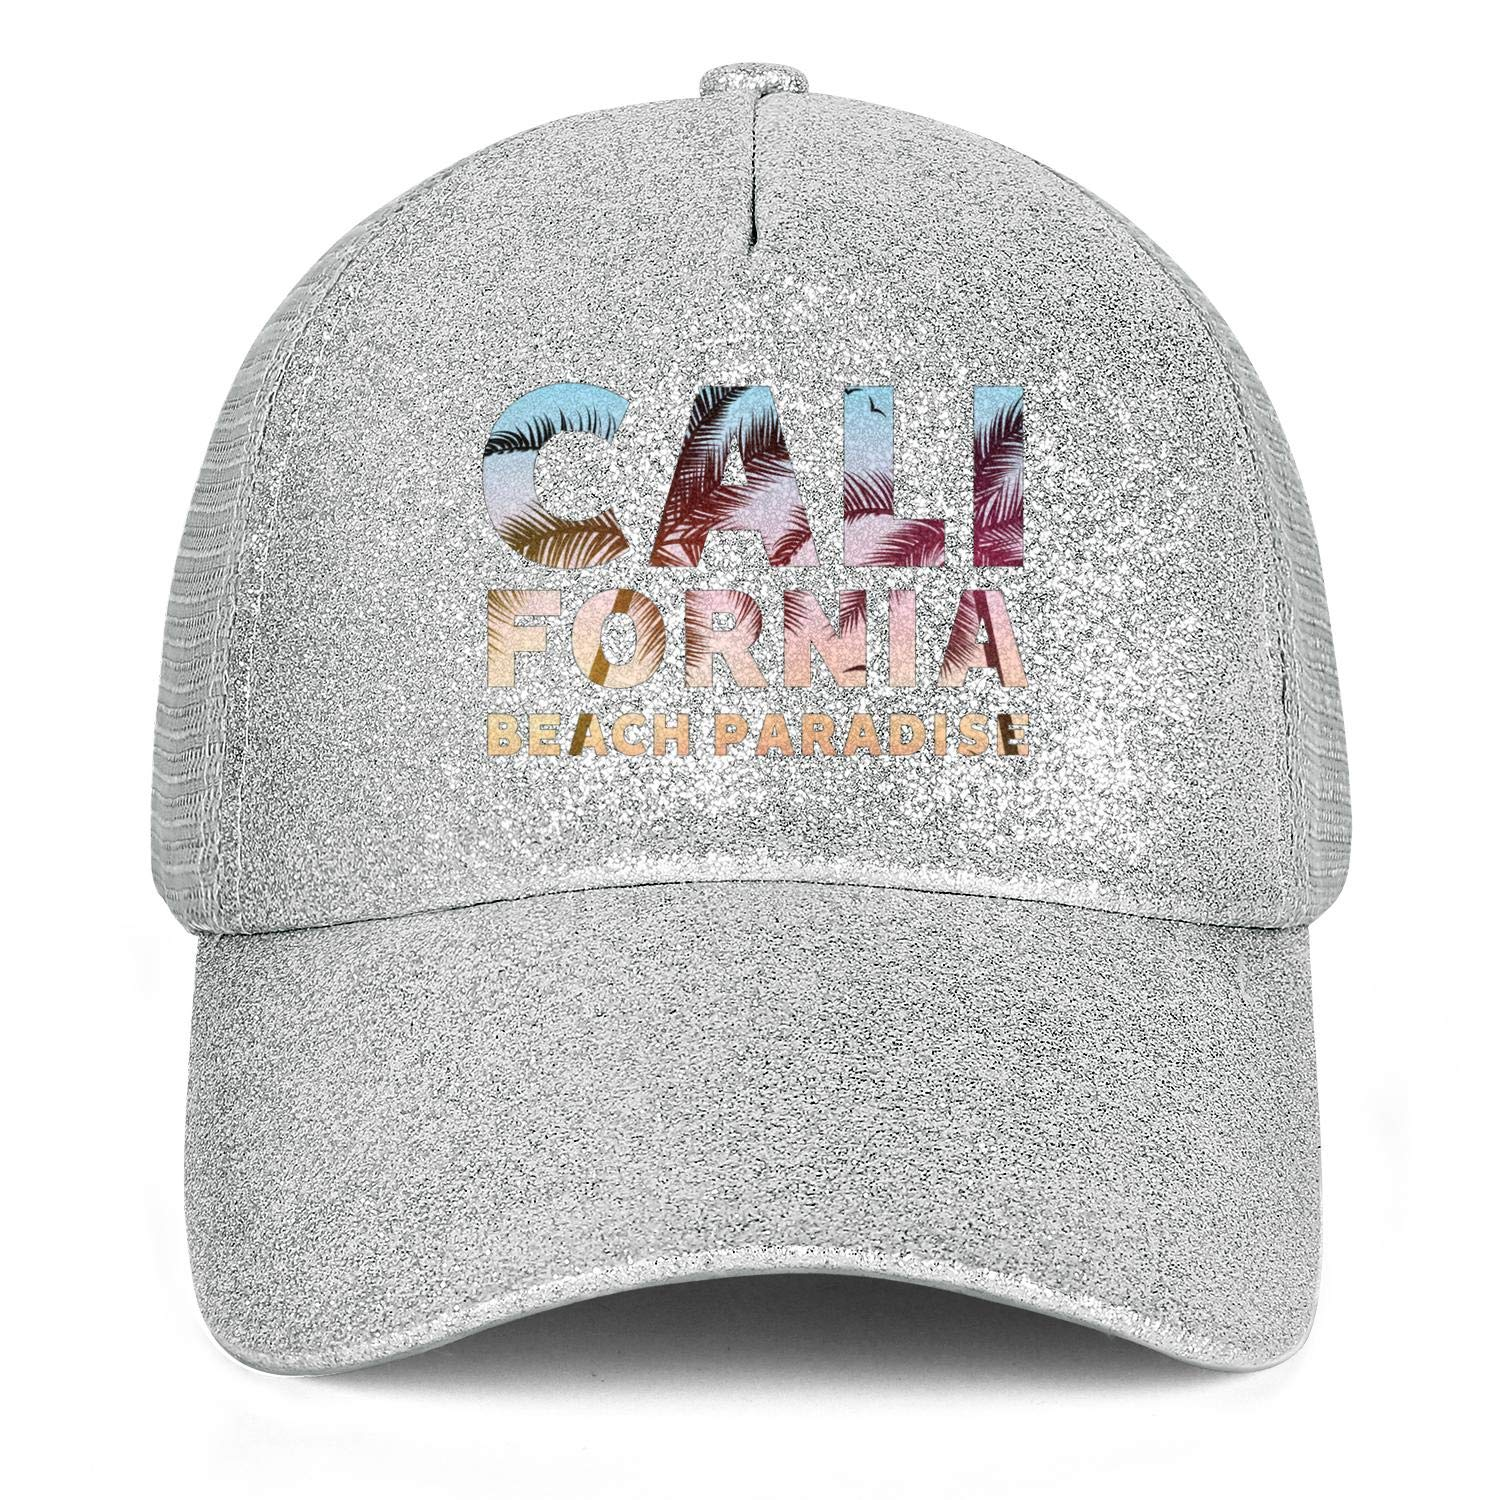 Sale23 California Palm Tree StickerWomensMeshBallPonytail Messy Cap Adjustable SnapbackBeach Hat